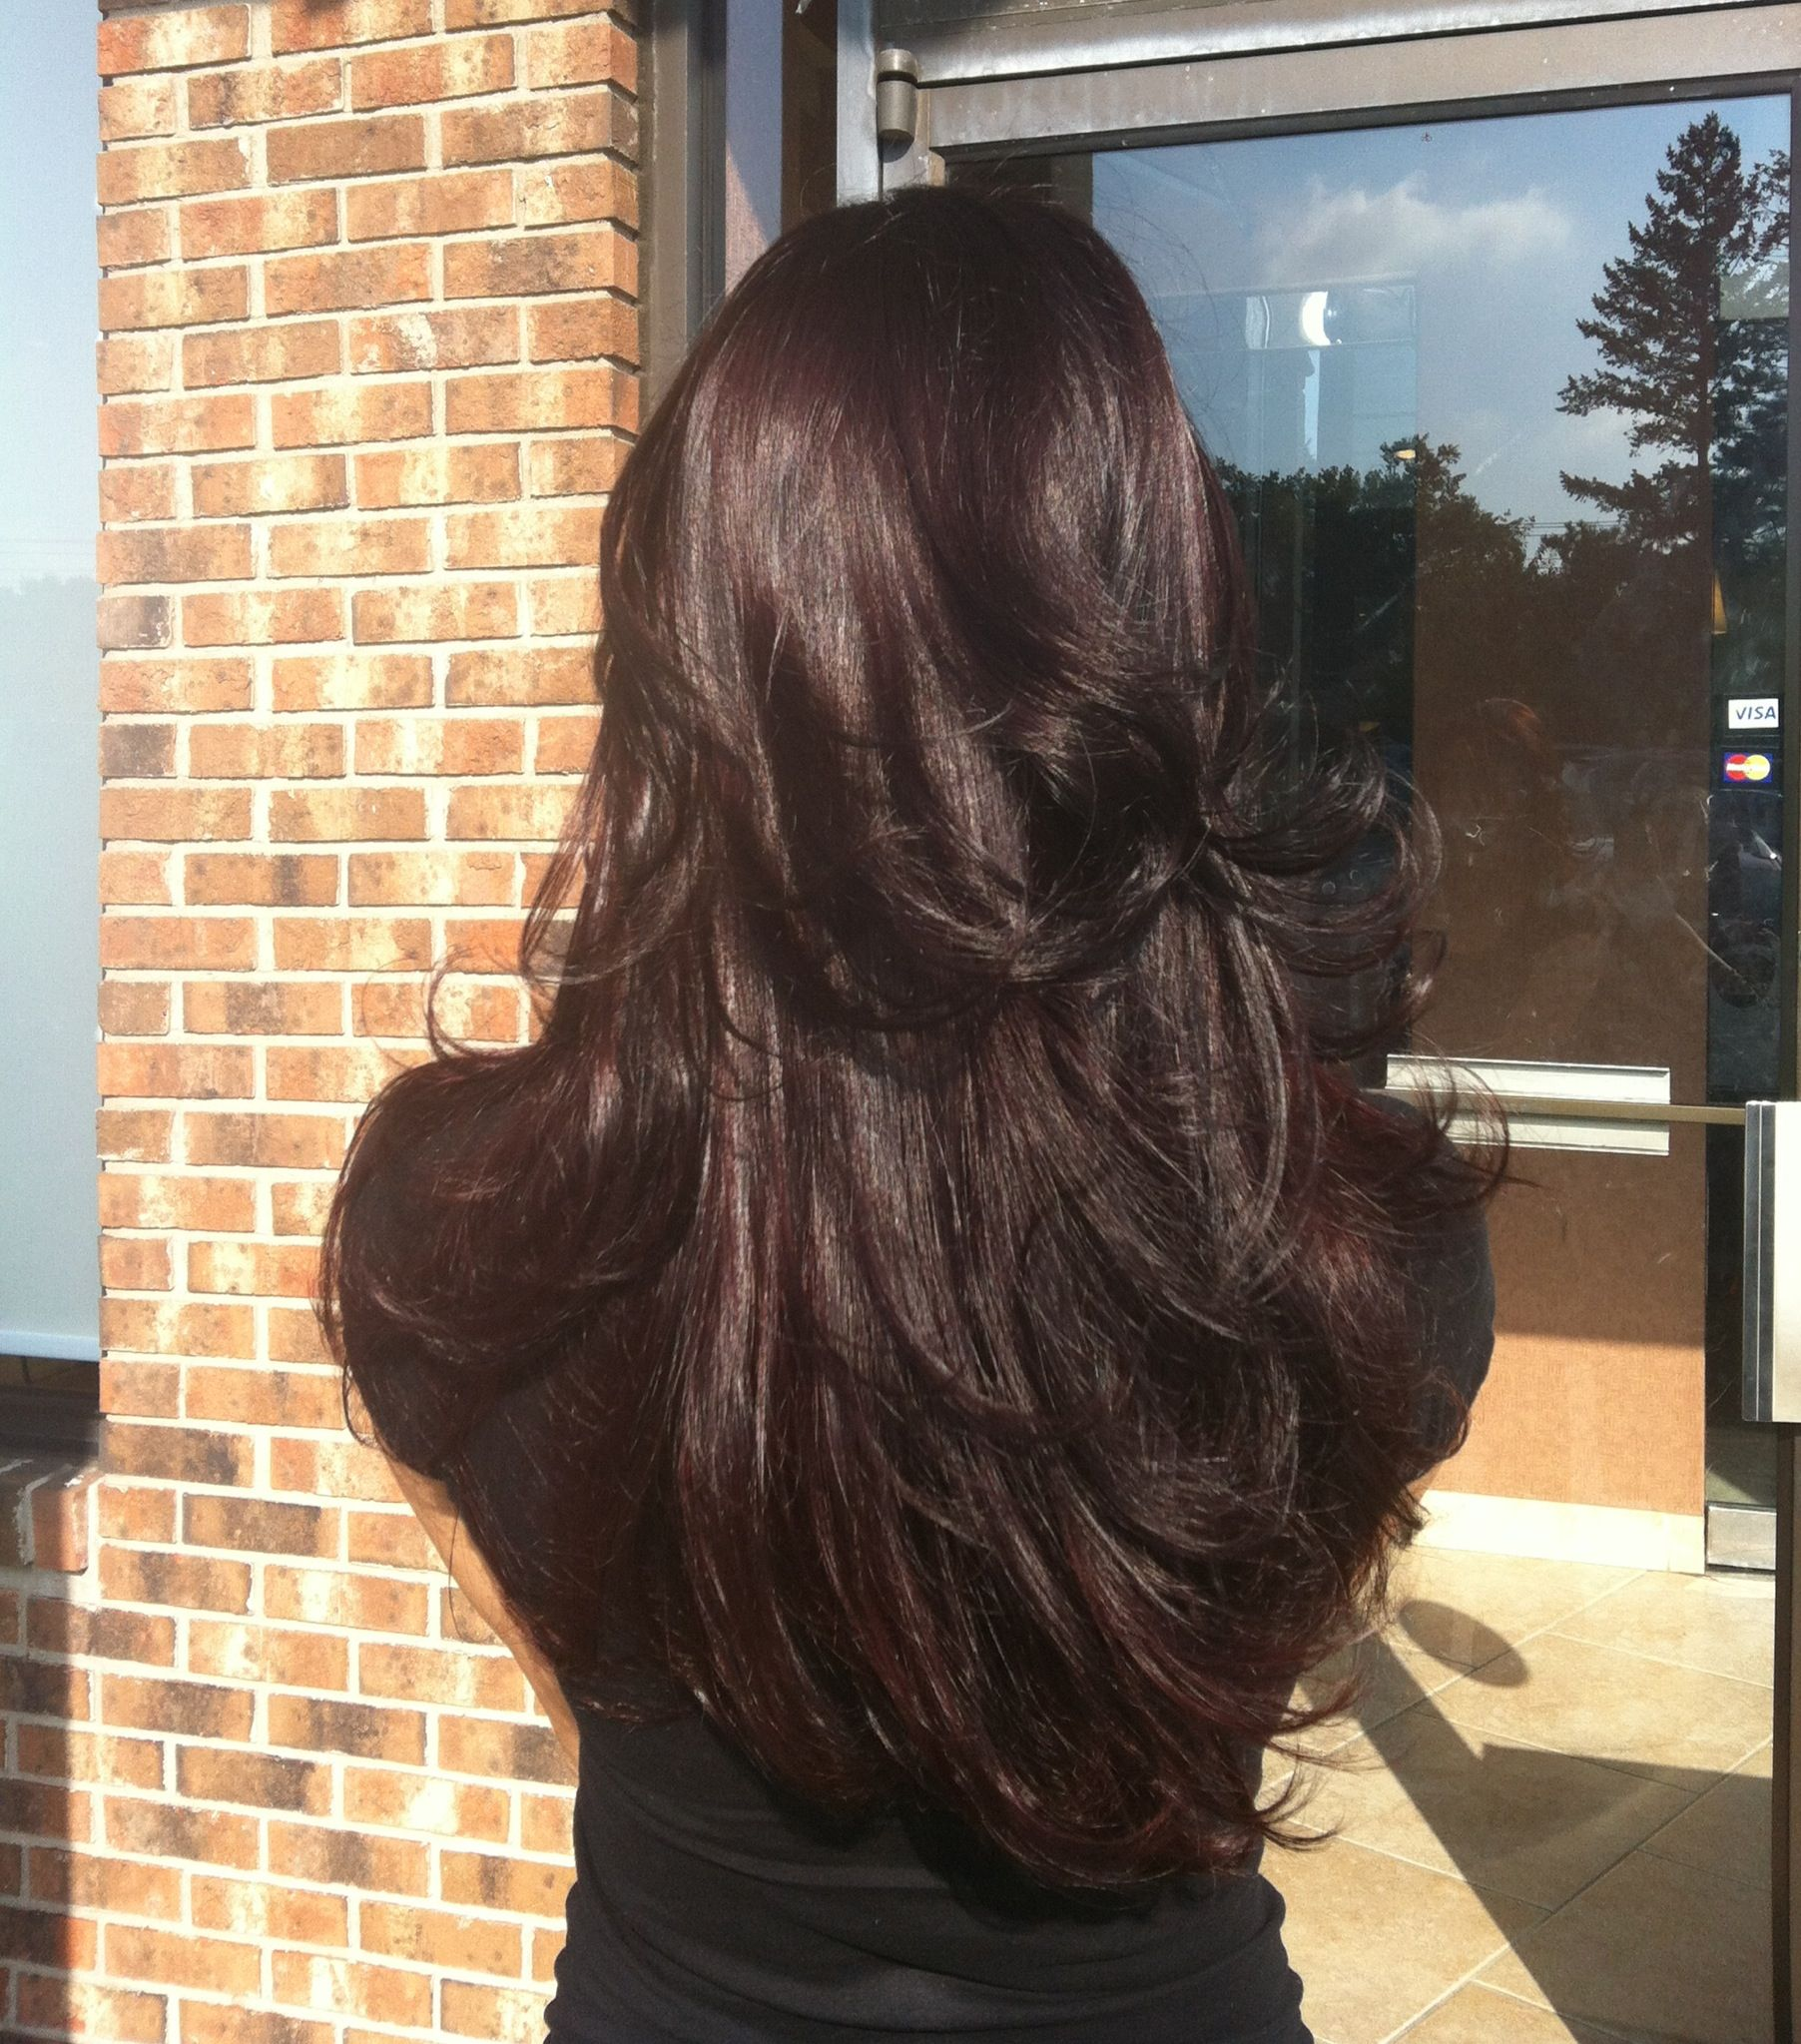 Dark brown with eggplant purple hue and long layers